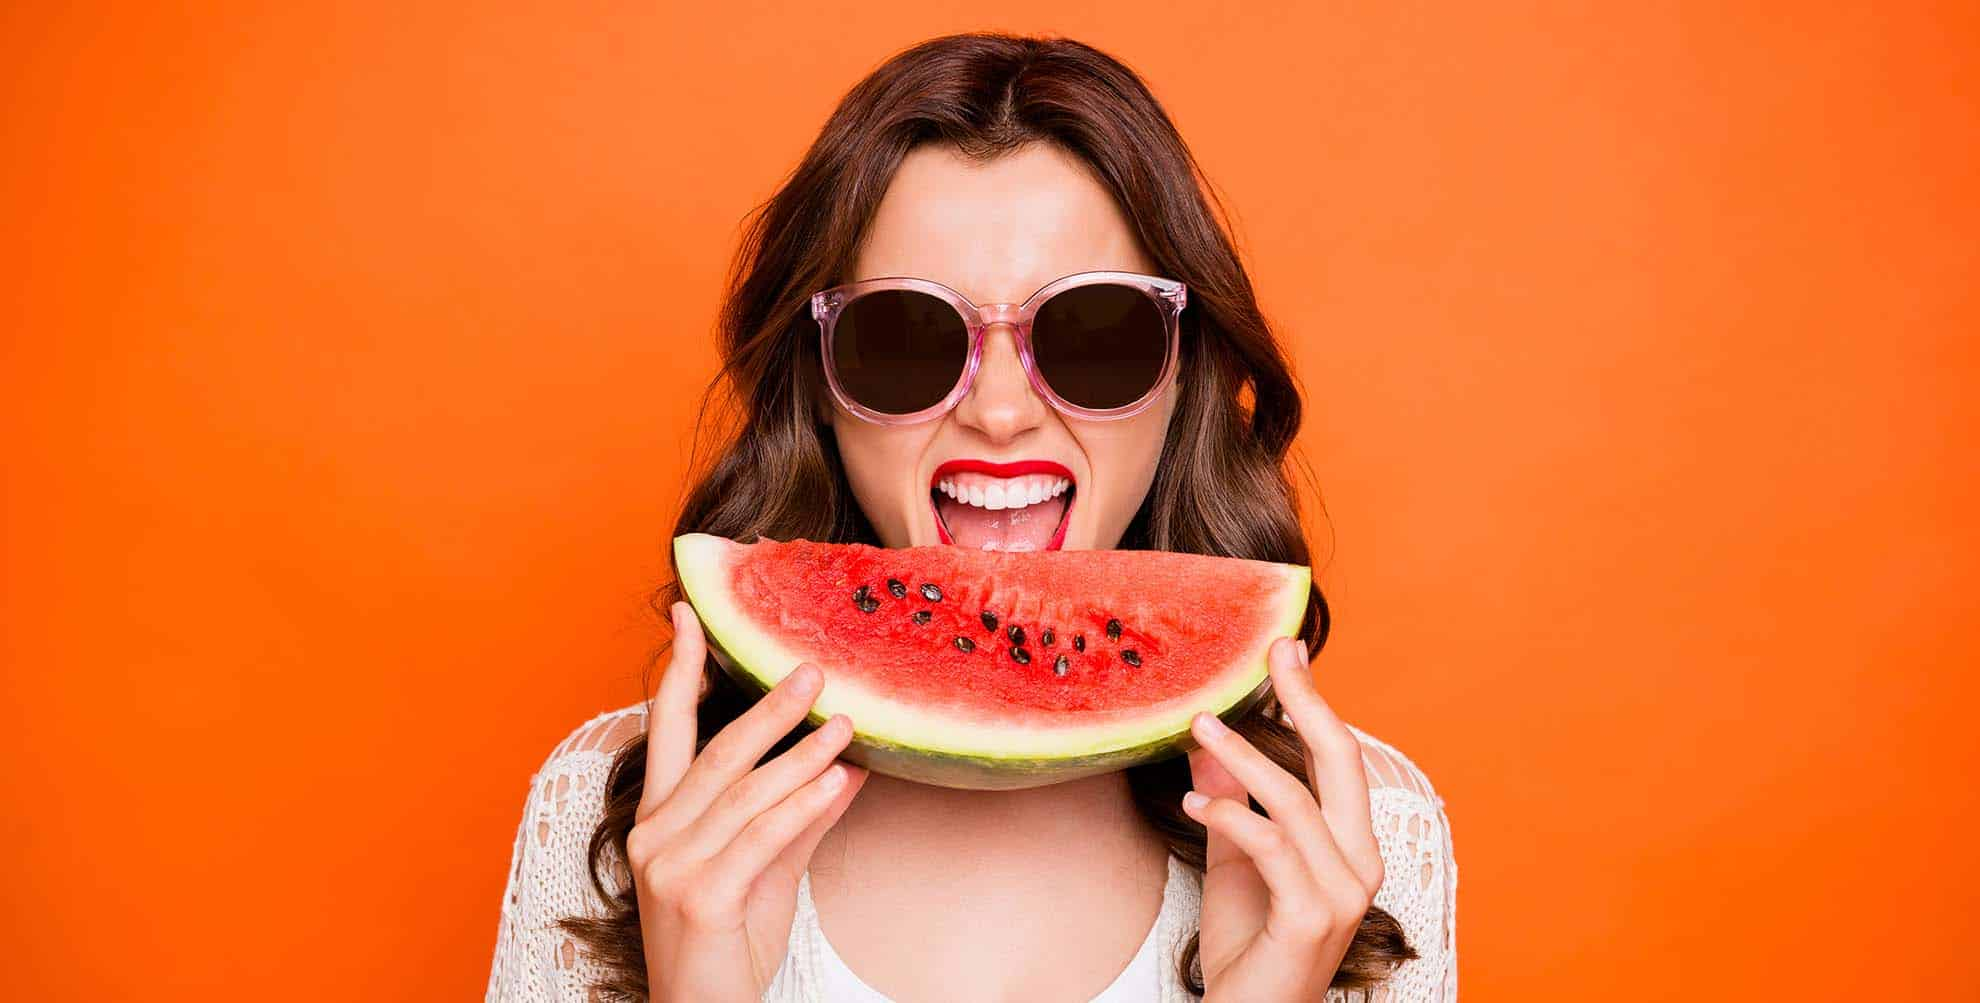 pretty lady wearing sunglasses eating a watermelon